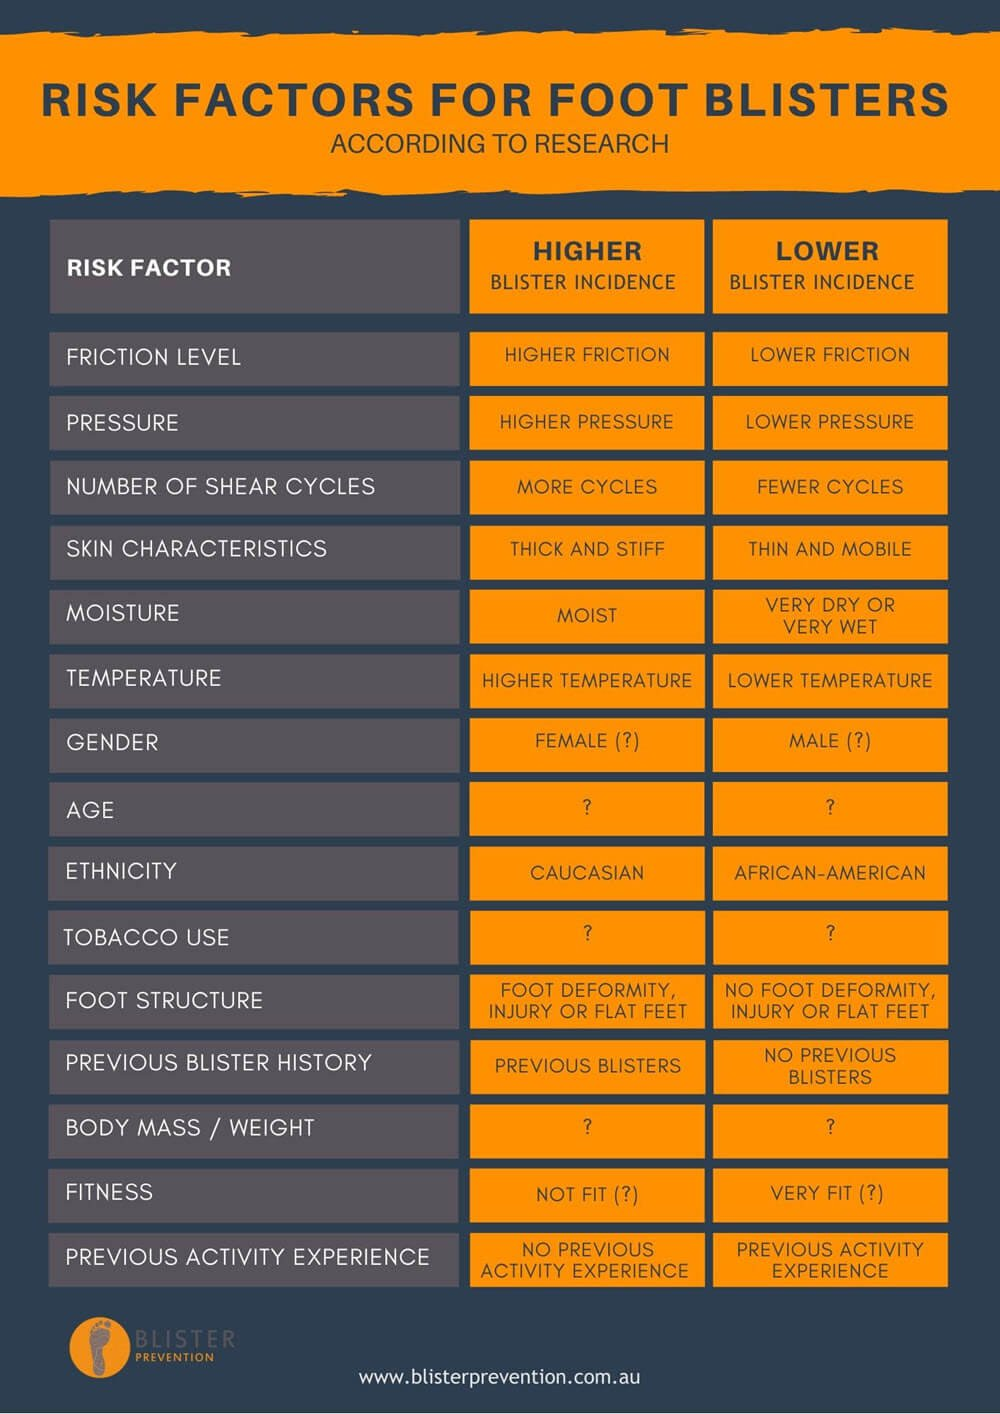 Risk Factors for foot blisters according to research